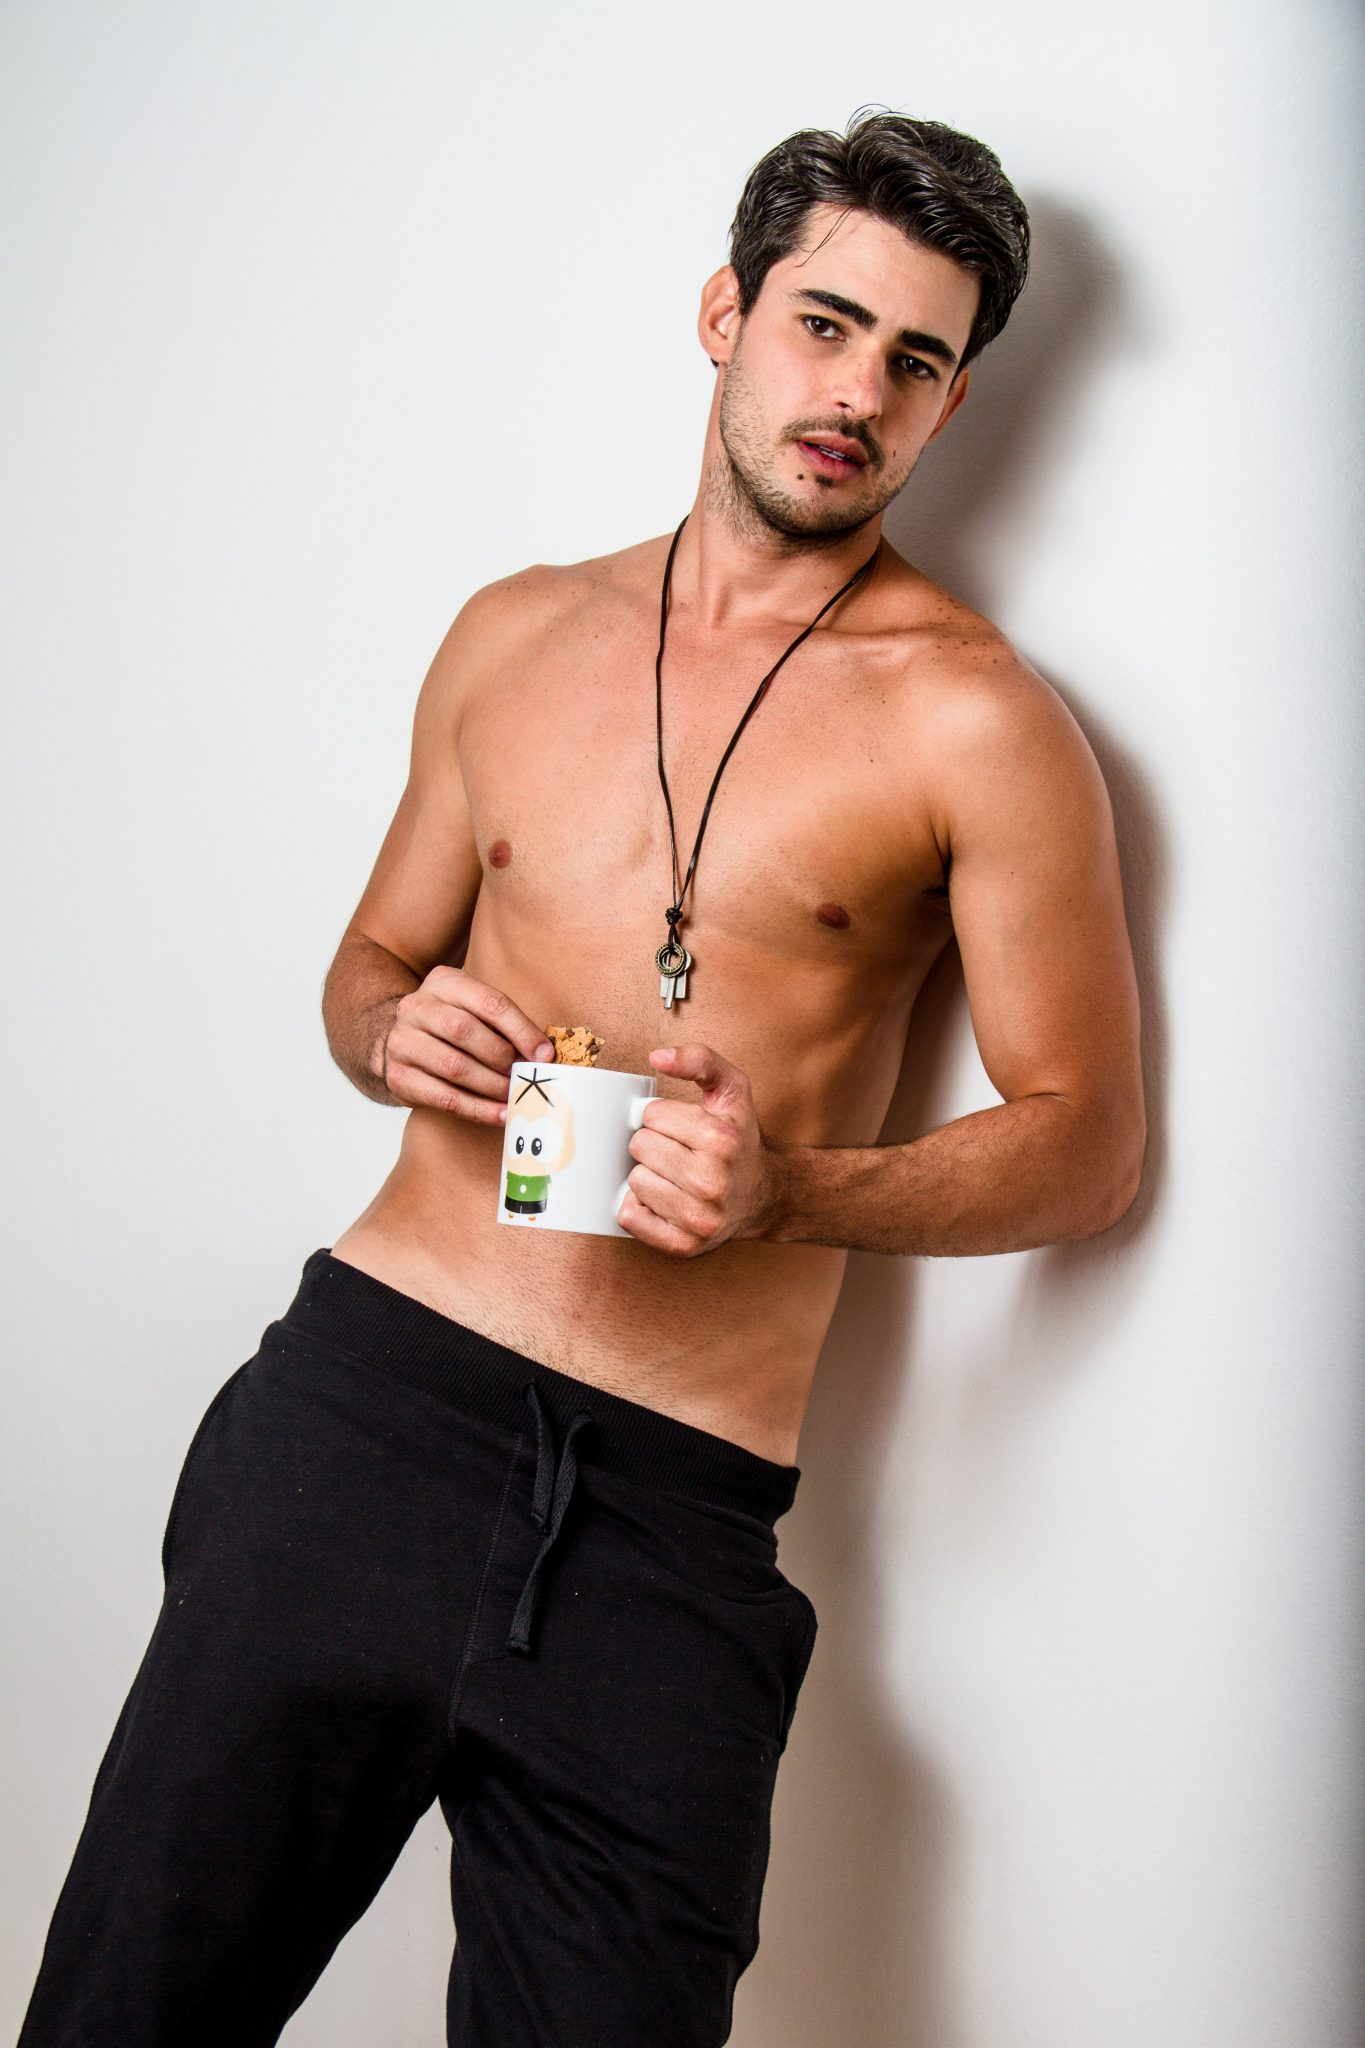 Ricardo Barreto by Simone Fransisco for Brazilian Male Model